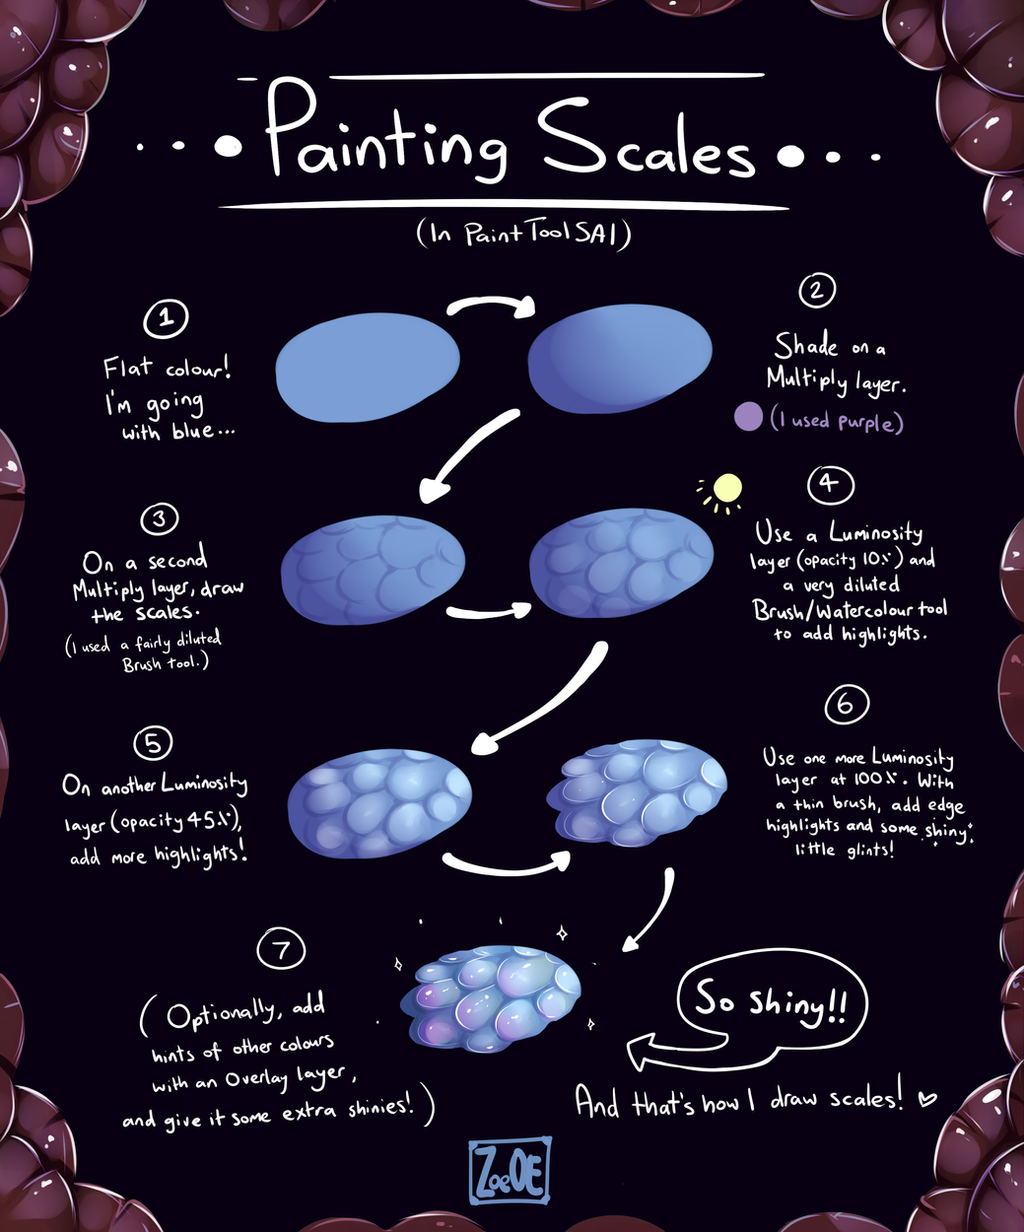 Painting scales with paint tool sai by oddsocket on deviantart for Space art tutorial